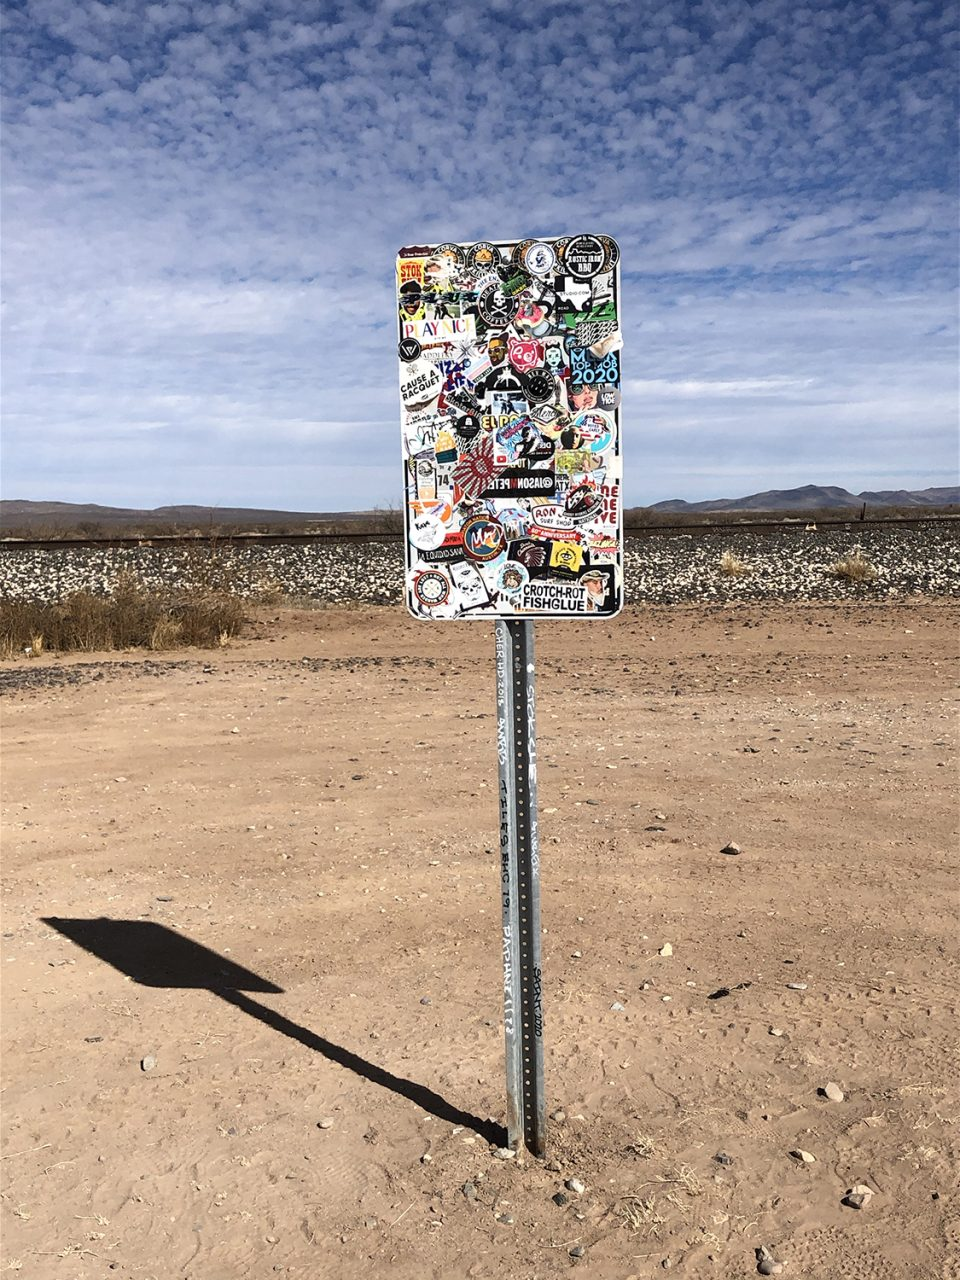 Looking away from Prada Marfa, one sees road signs covered in stickers and graffiti.